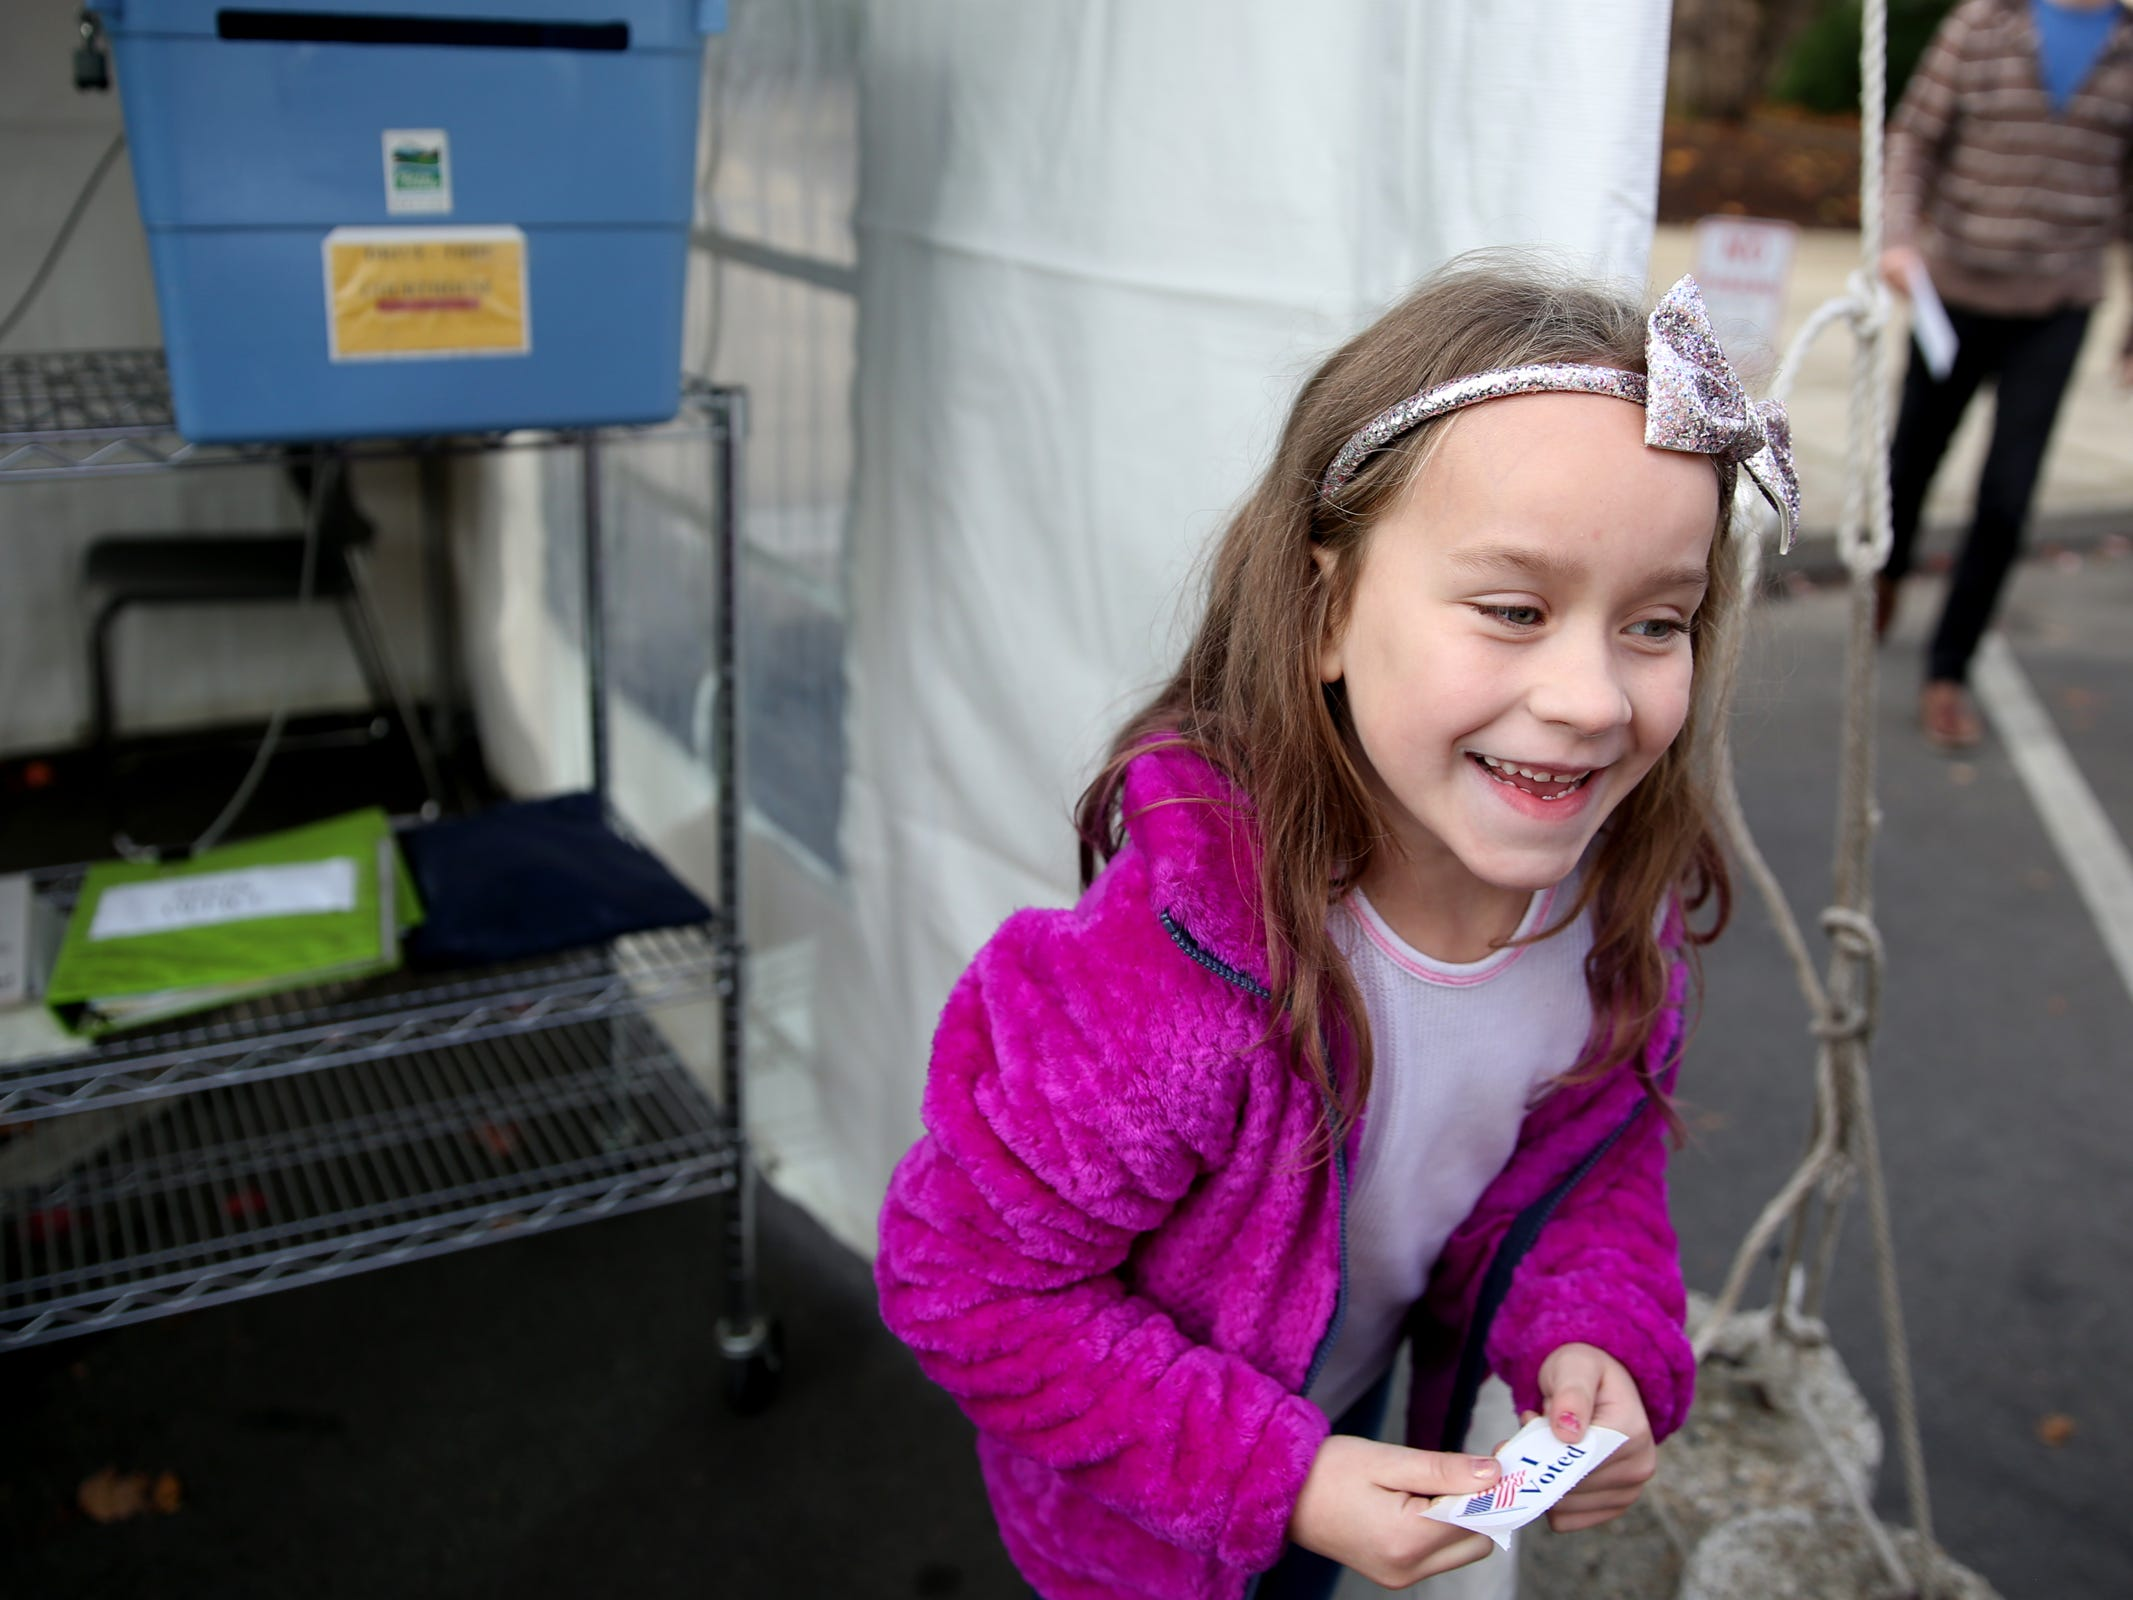 Addisun Rach, 7, of Salem, gets a sticker after slipping her dad's ballot inside a drop box at the drive-up drop box on Court St. NE in Salem on Election Day, Tuesday, Nov. 6, 2018.